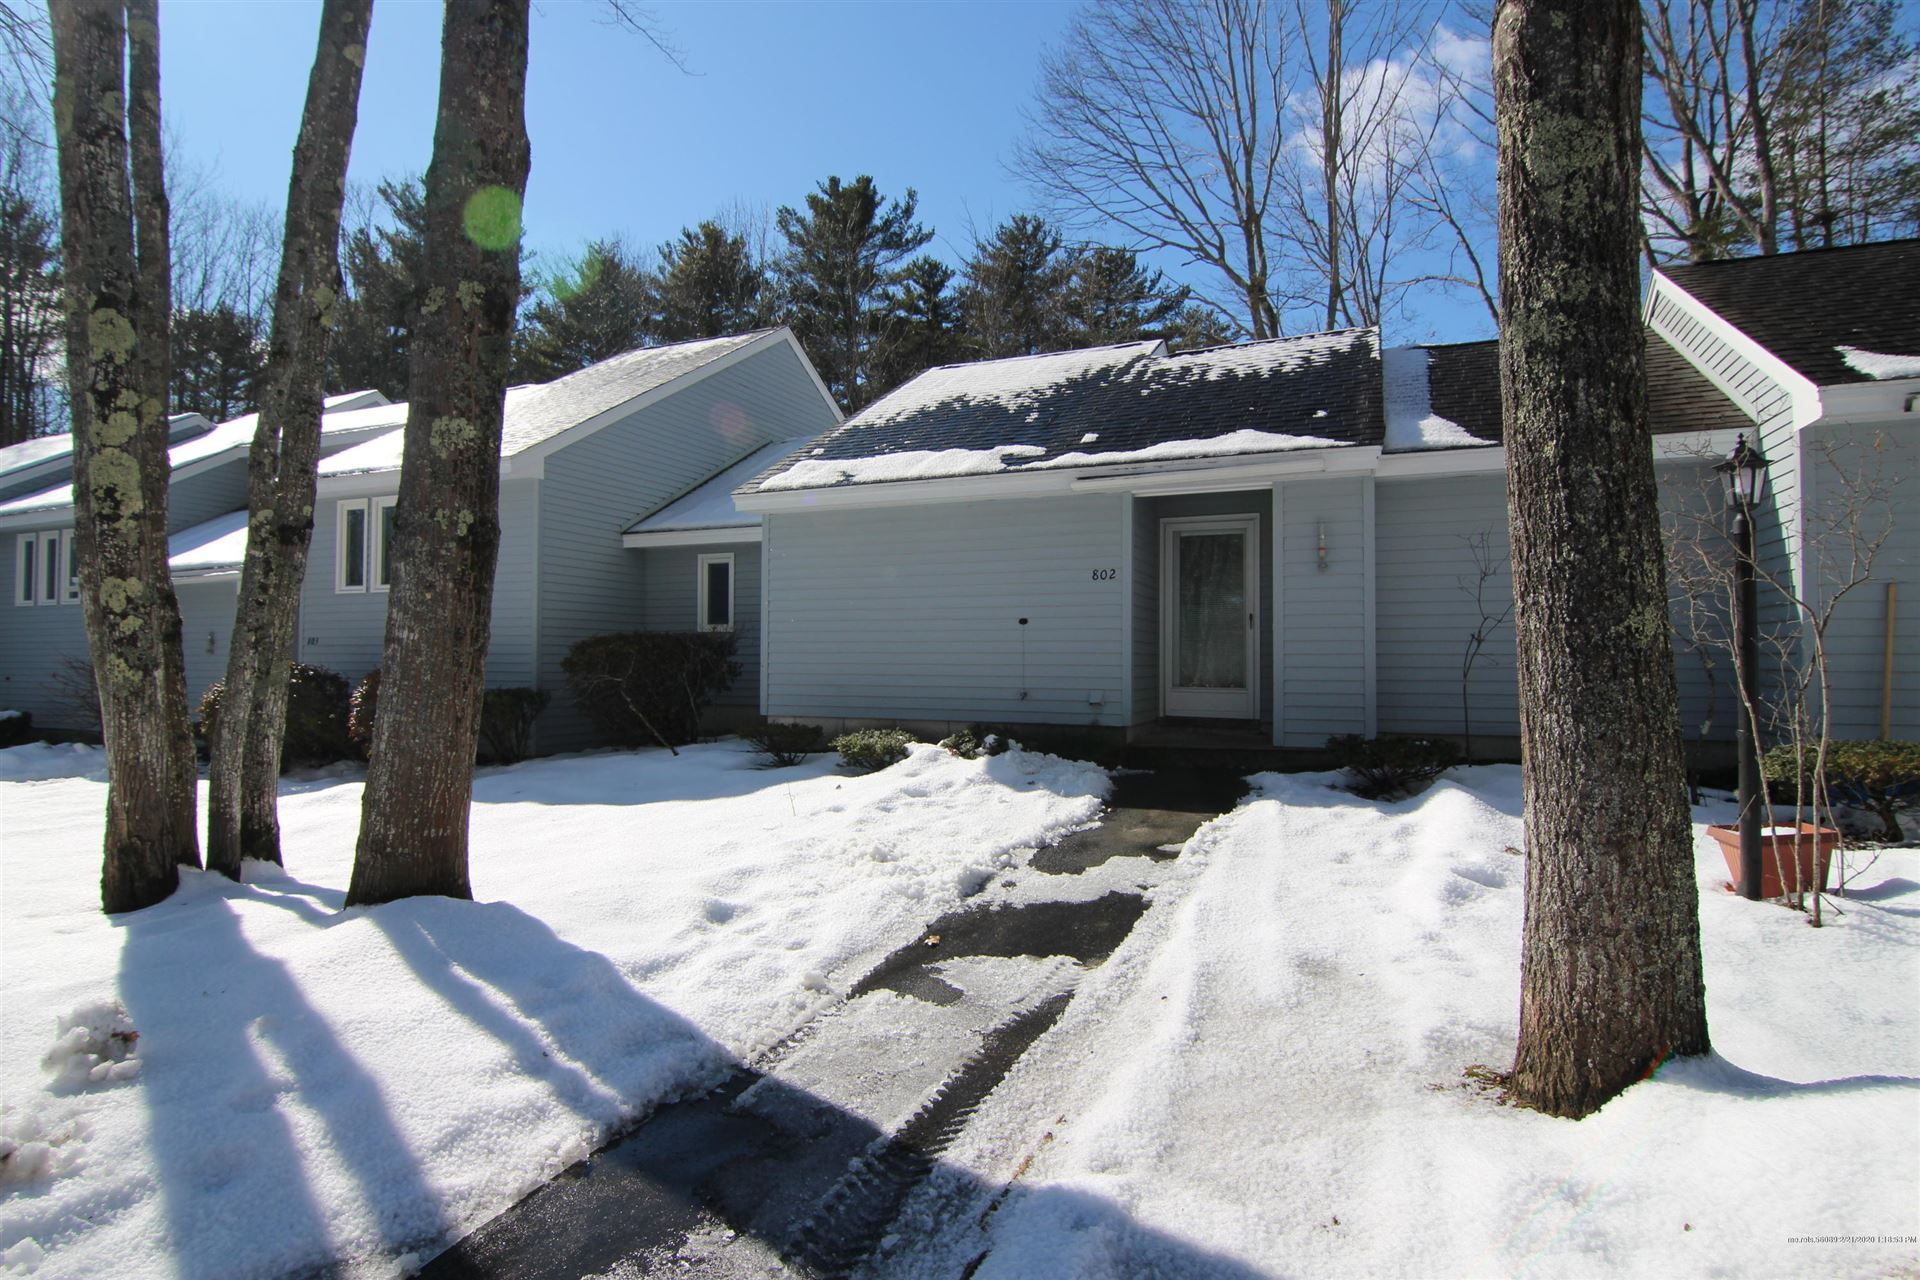 Photo of 135 Portland Avenue #802, Old Orchard Beach, ME 04064 (MLS # 1445050)